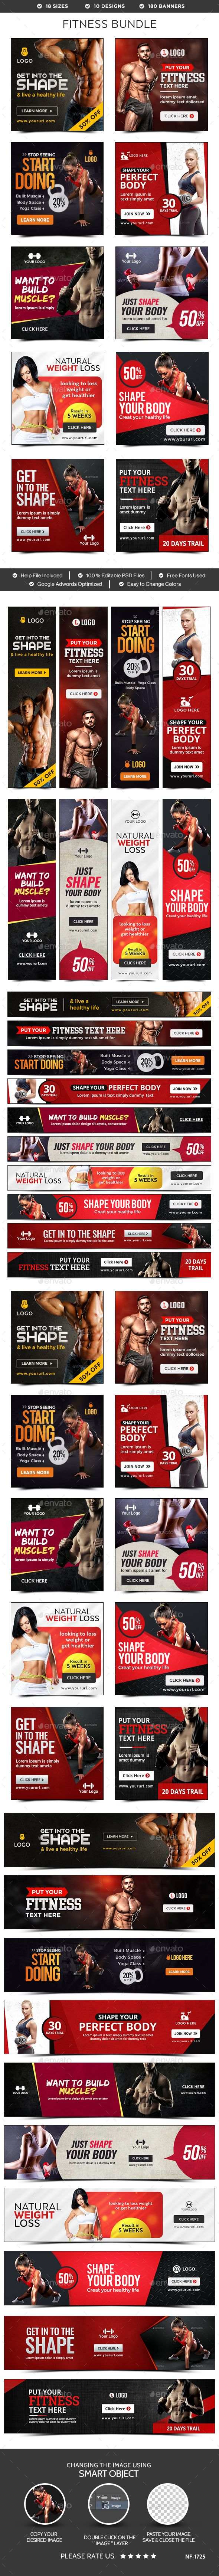 Fitness Banners Bundle - 10 Sets - 180 Banners PSD